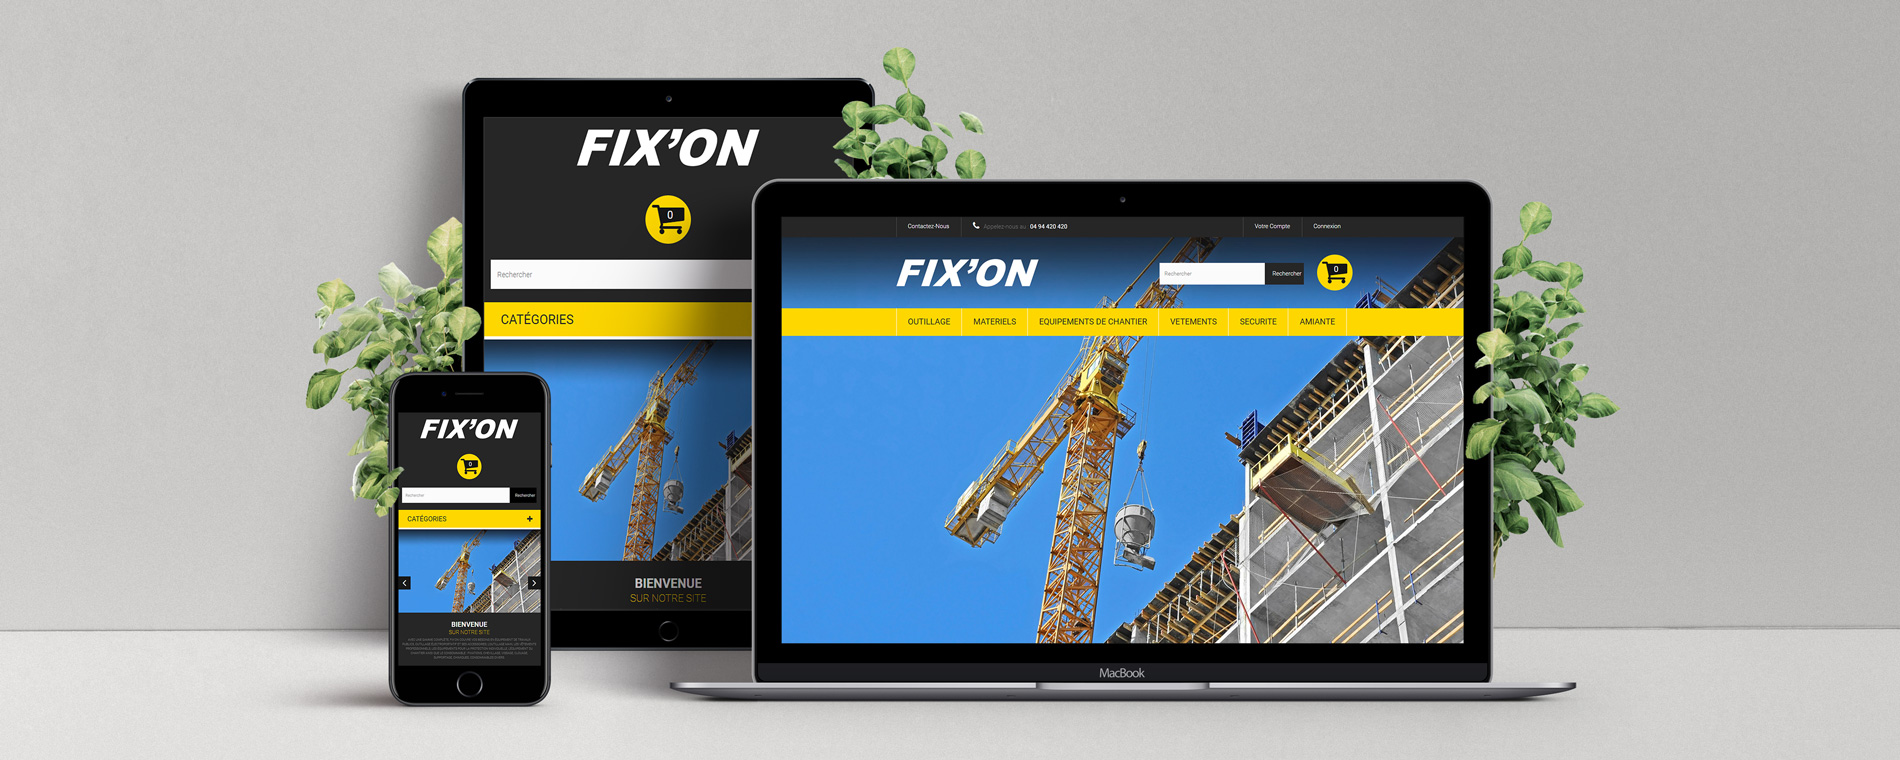 fixon-website-wins-design-award--landscape